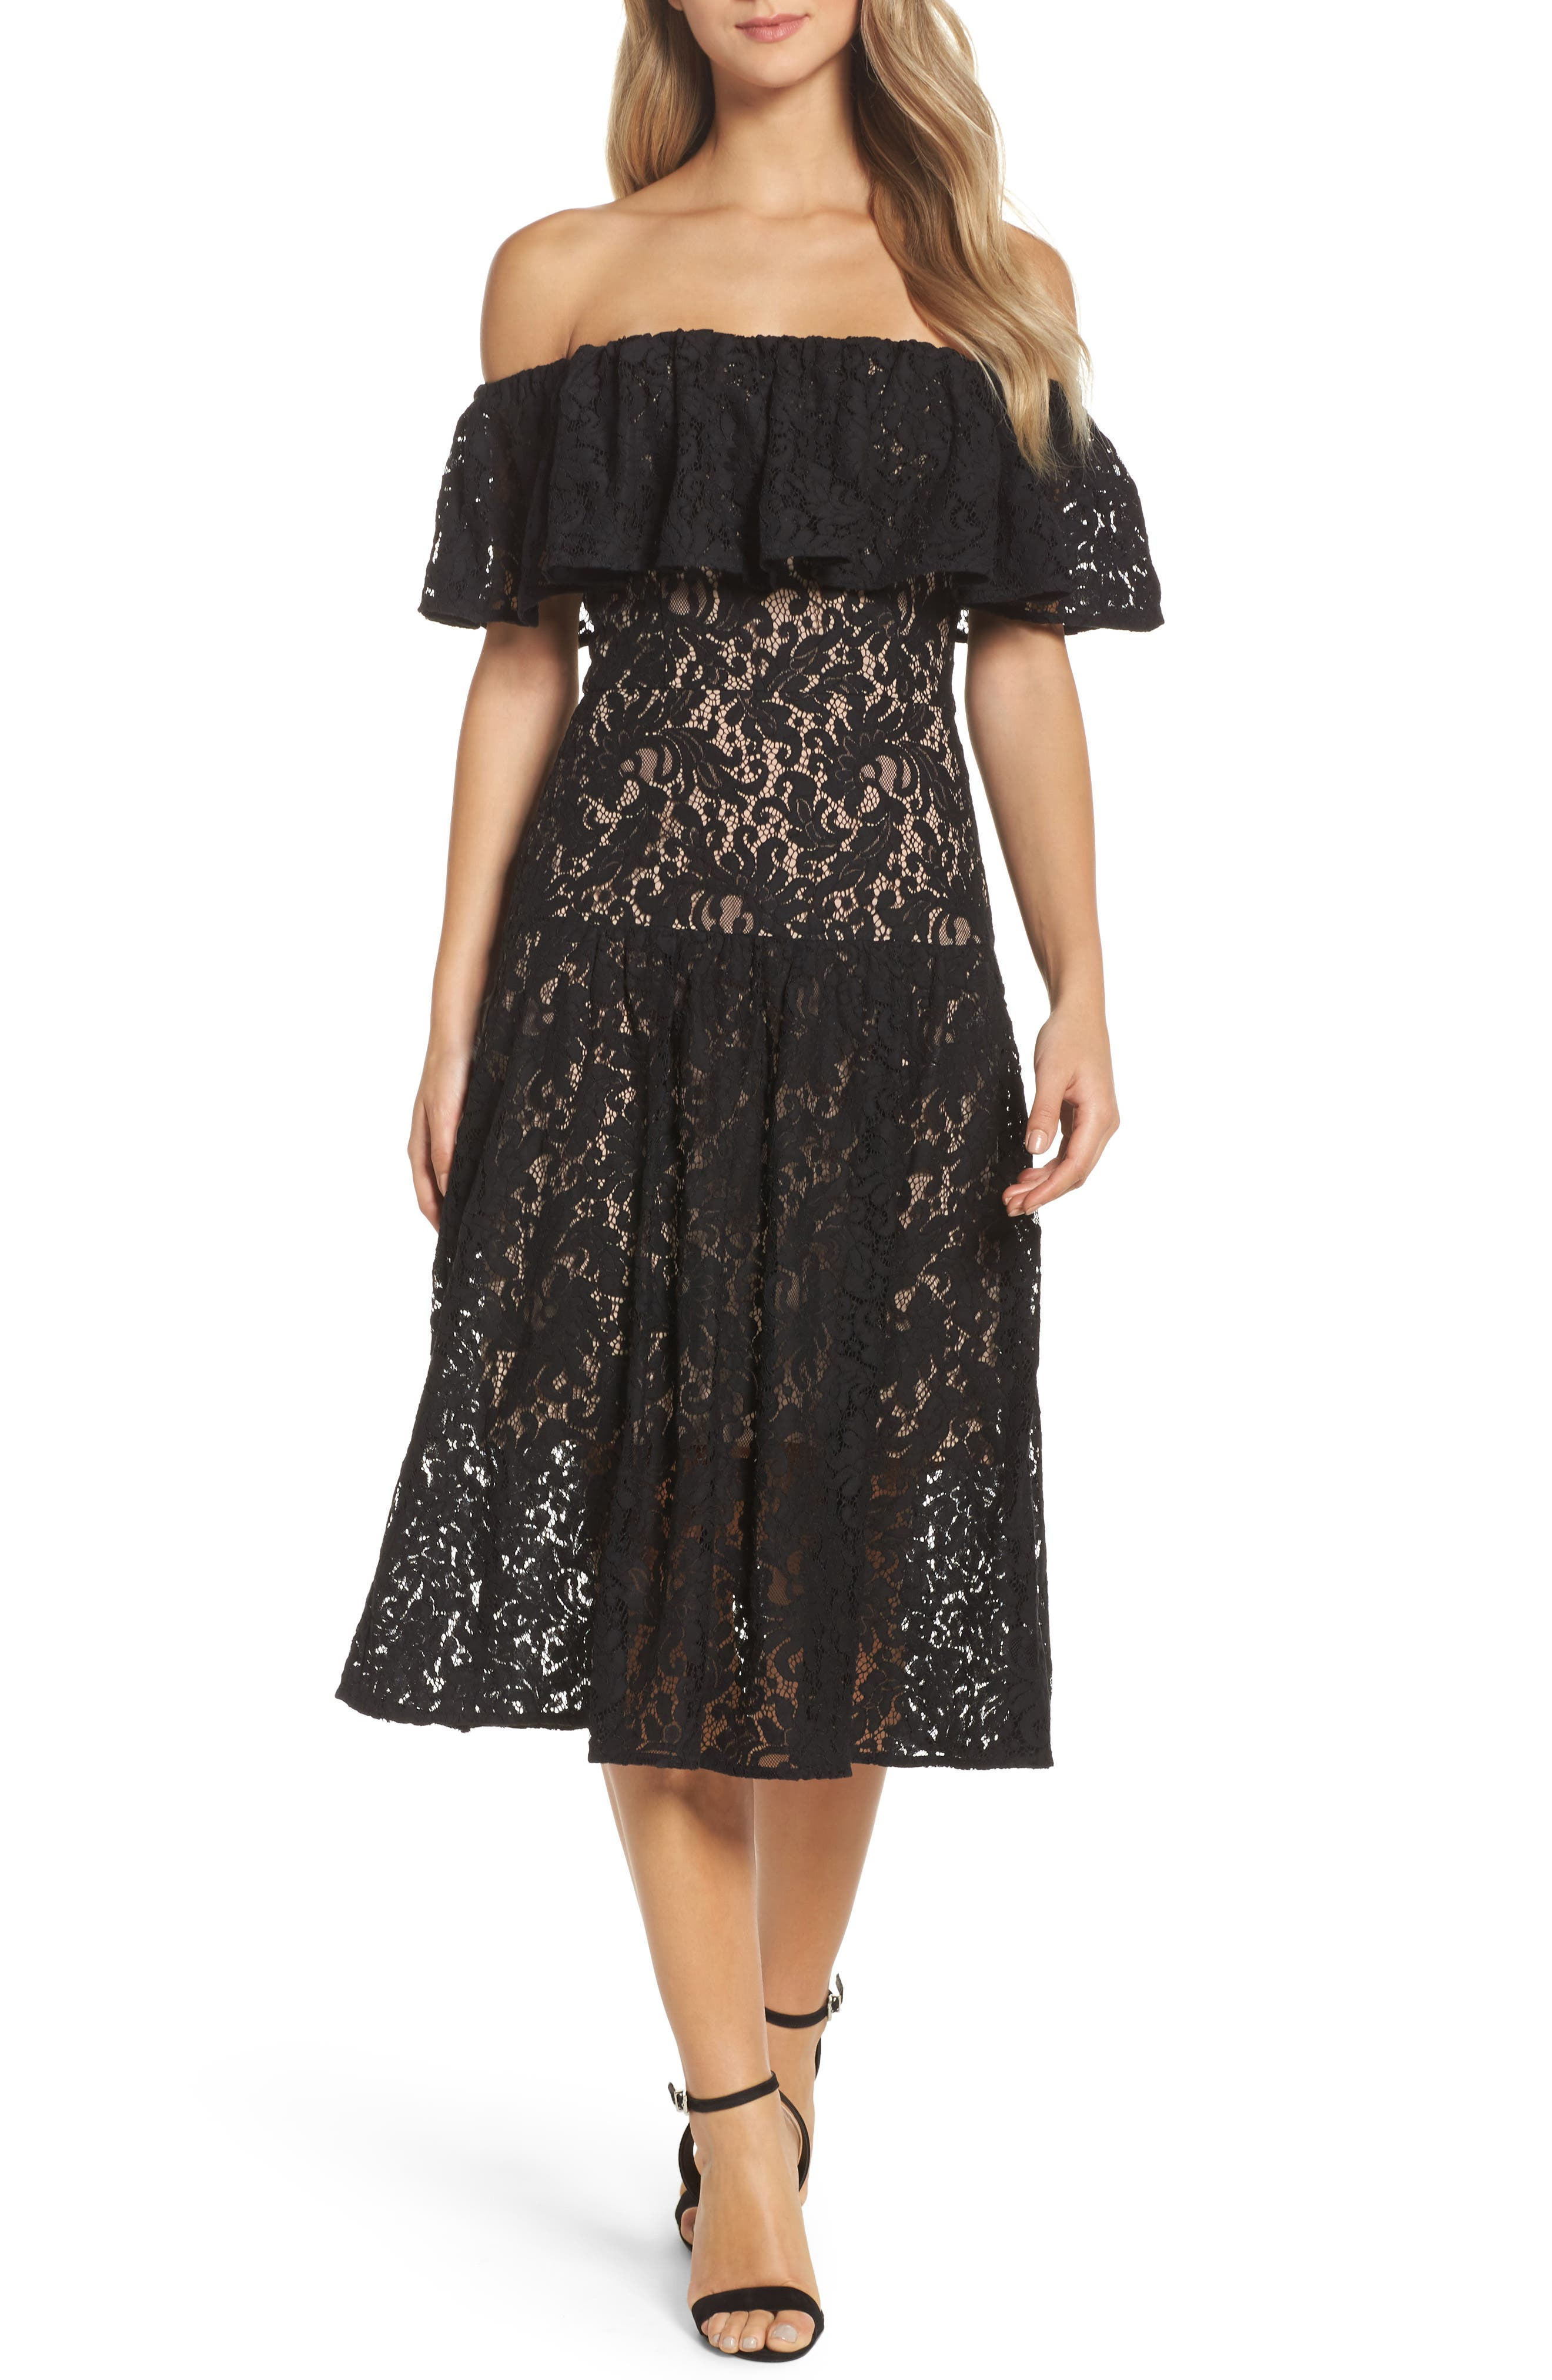 Sunday Silence Lace Off the Shoulder Dress,                             Main thumbnail 1, color,                             Black